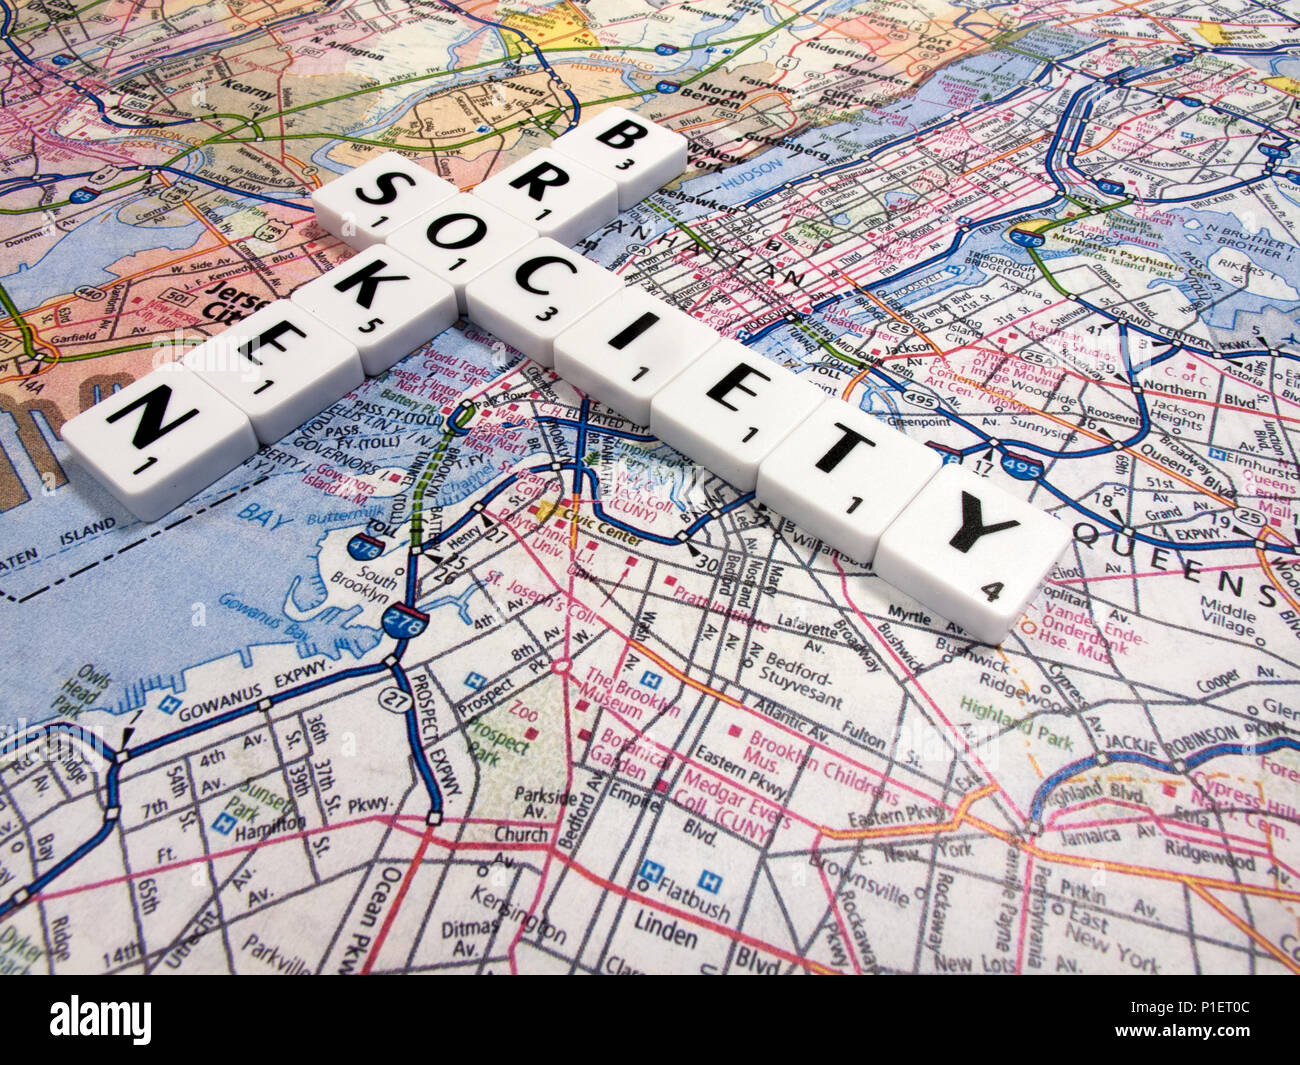 representation of broken society, a perceived or apparent general decline in moral values, with New York map background - Stock Image